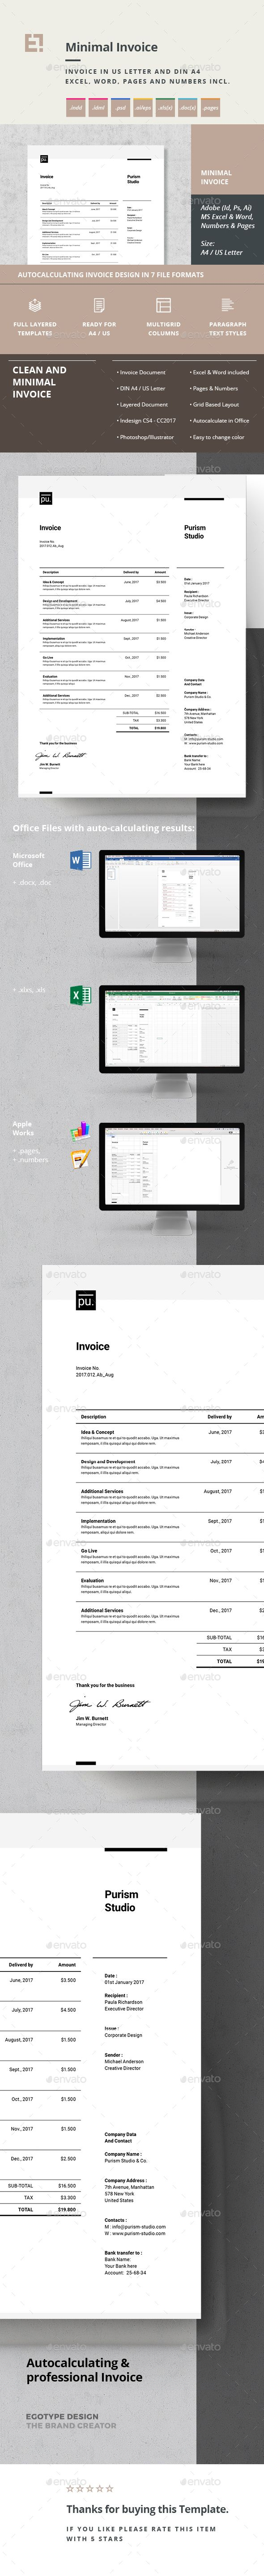 Invoice Template PSD, Vector EPS, InDesign INDD, AI Illustrator, MS Word - A4 and US Letter Size